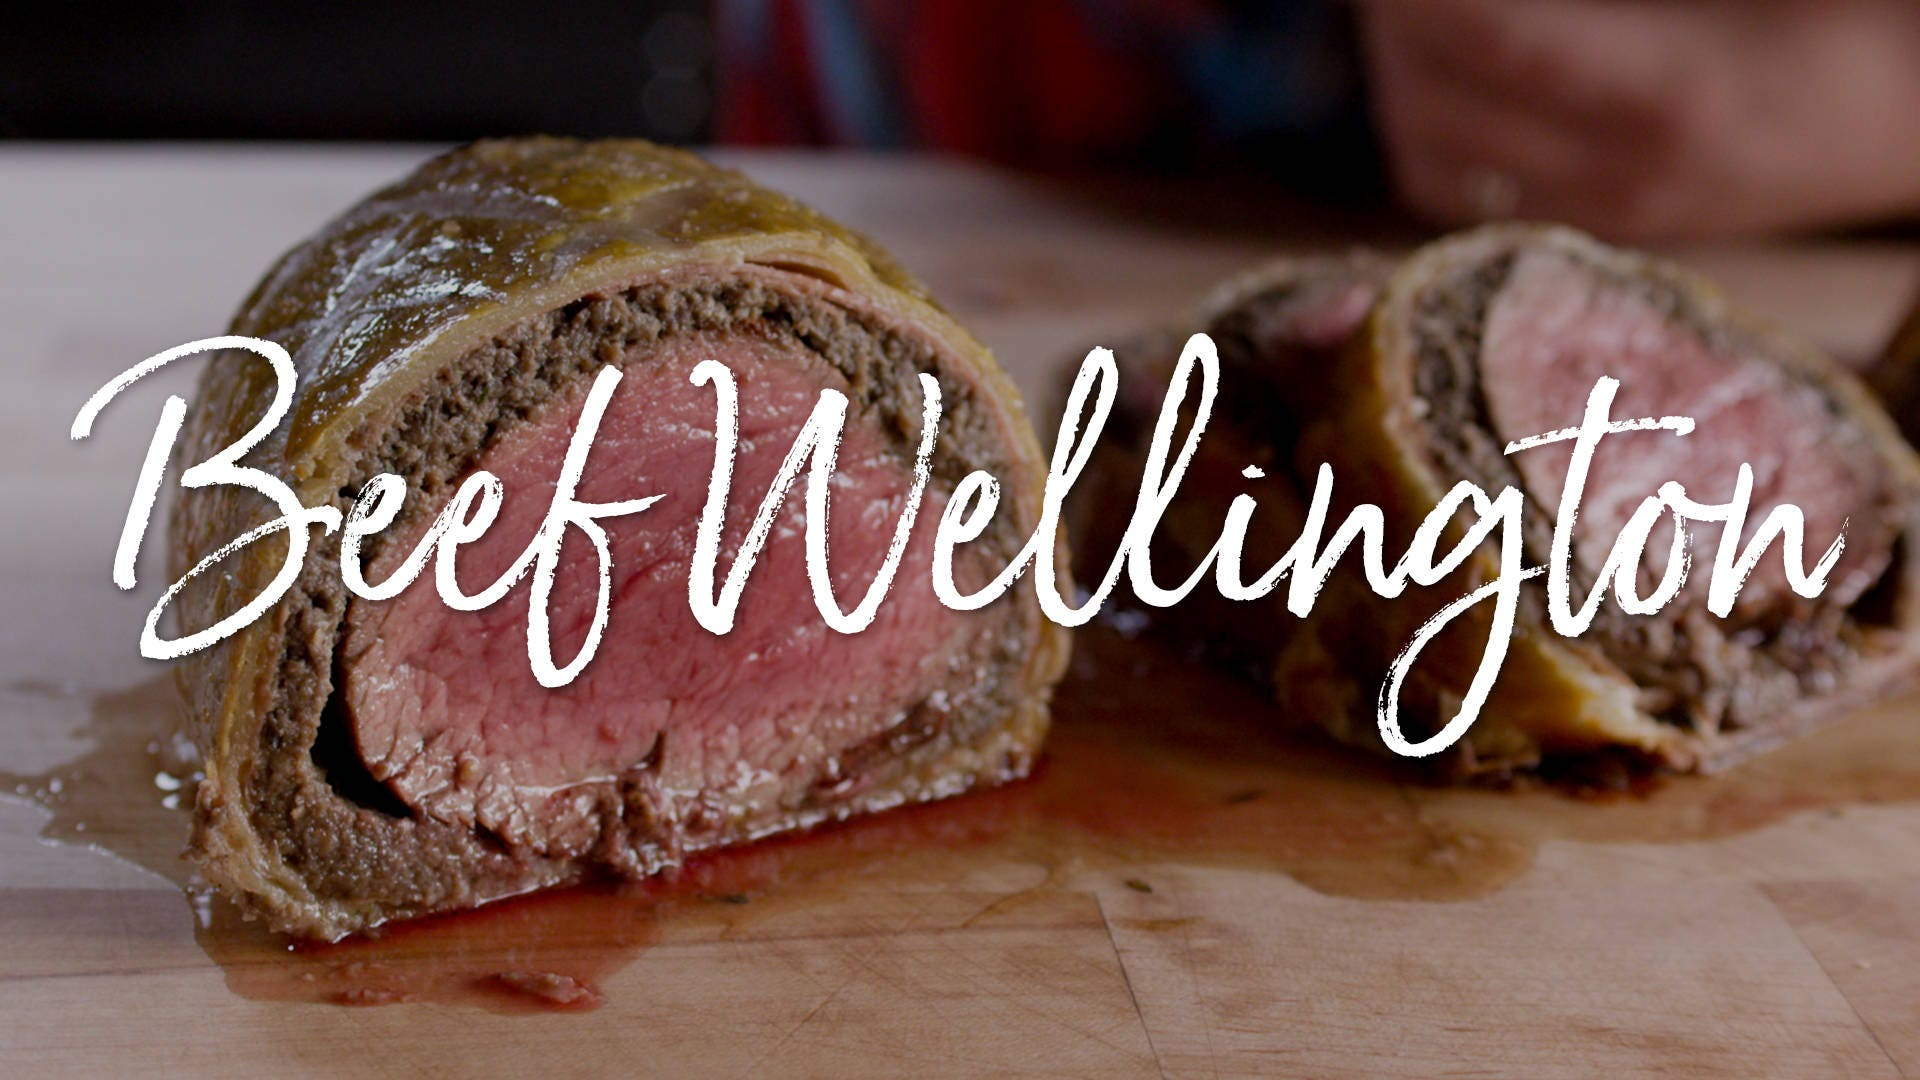 Recipe for Beef Wellington